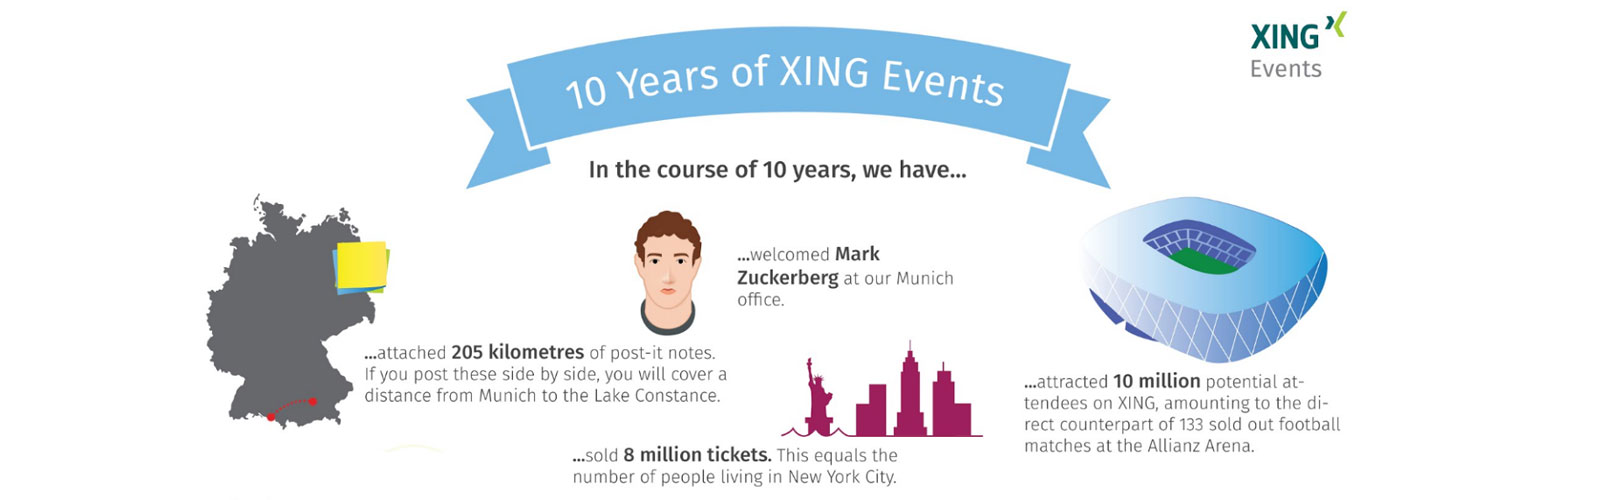 xing-events-10-ans